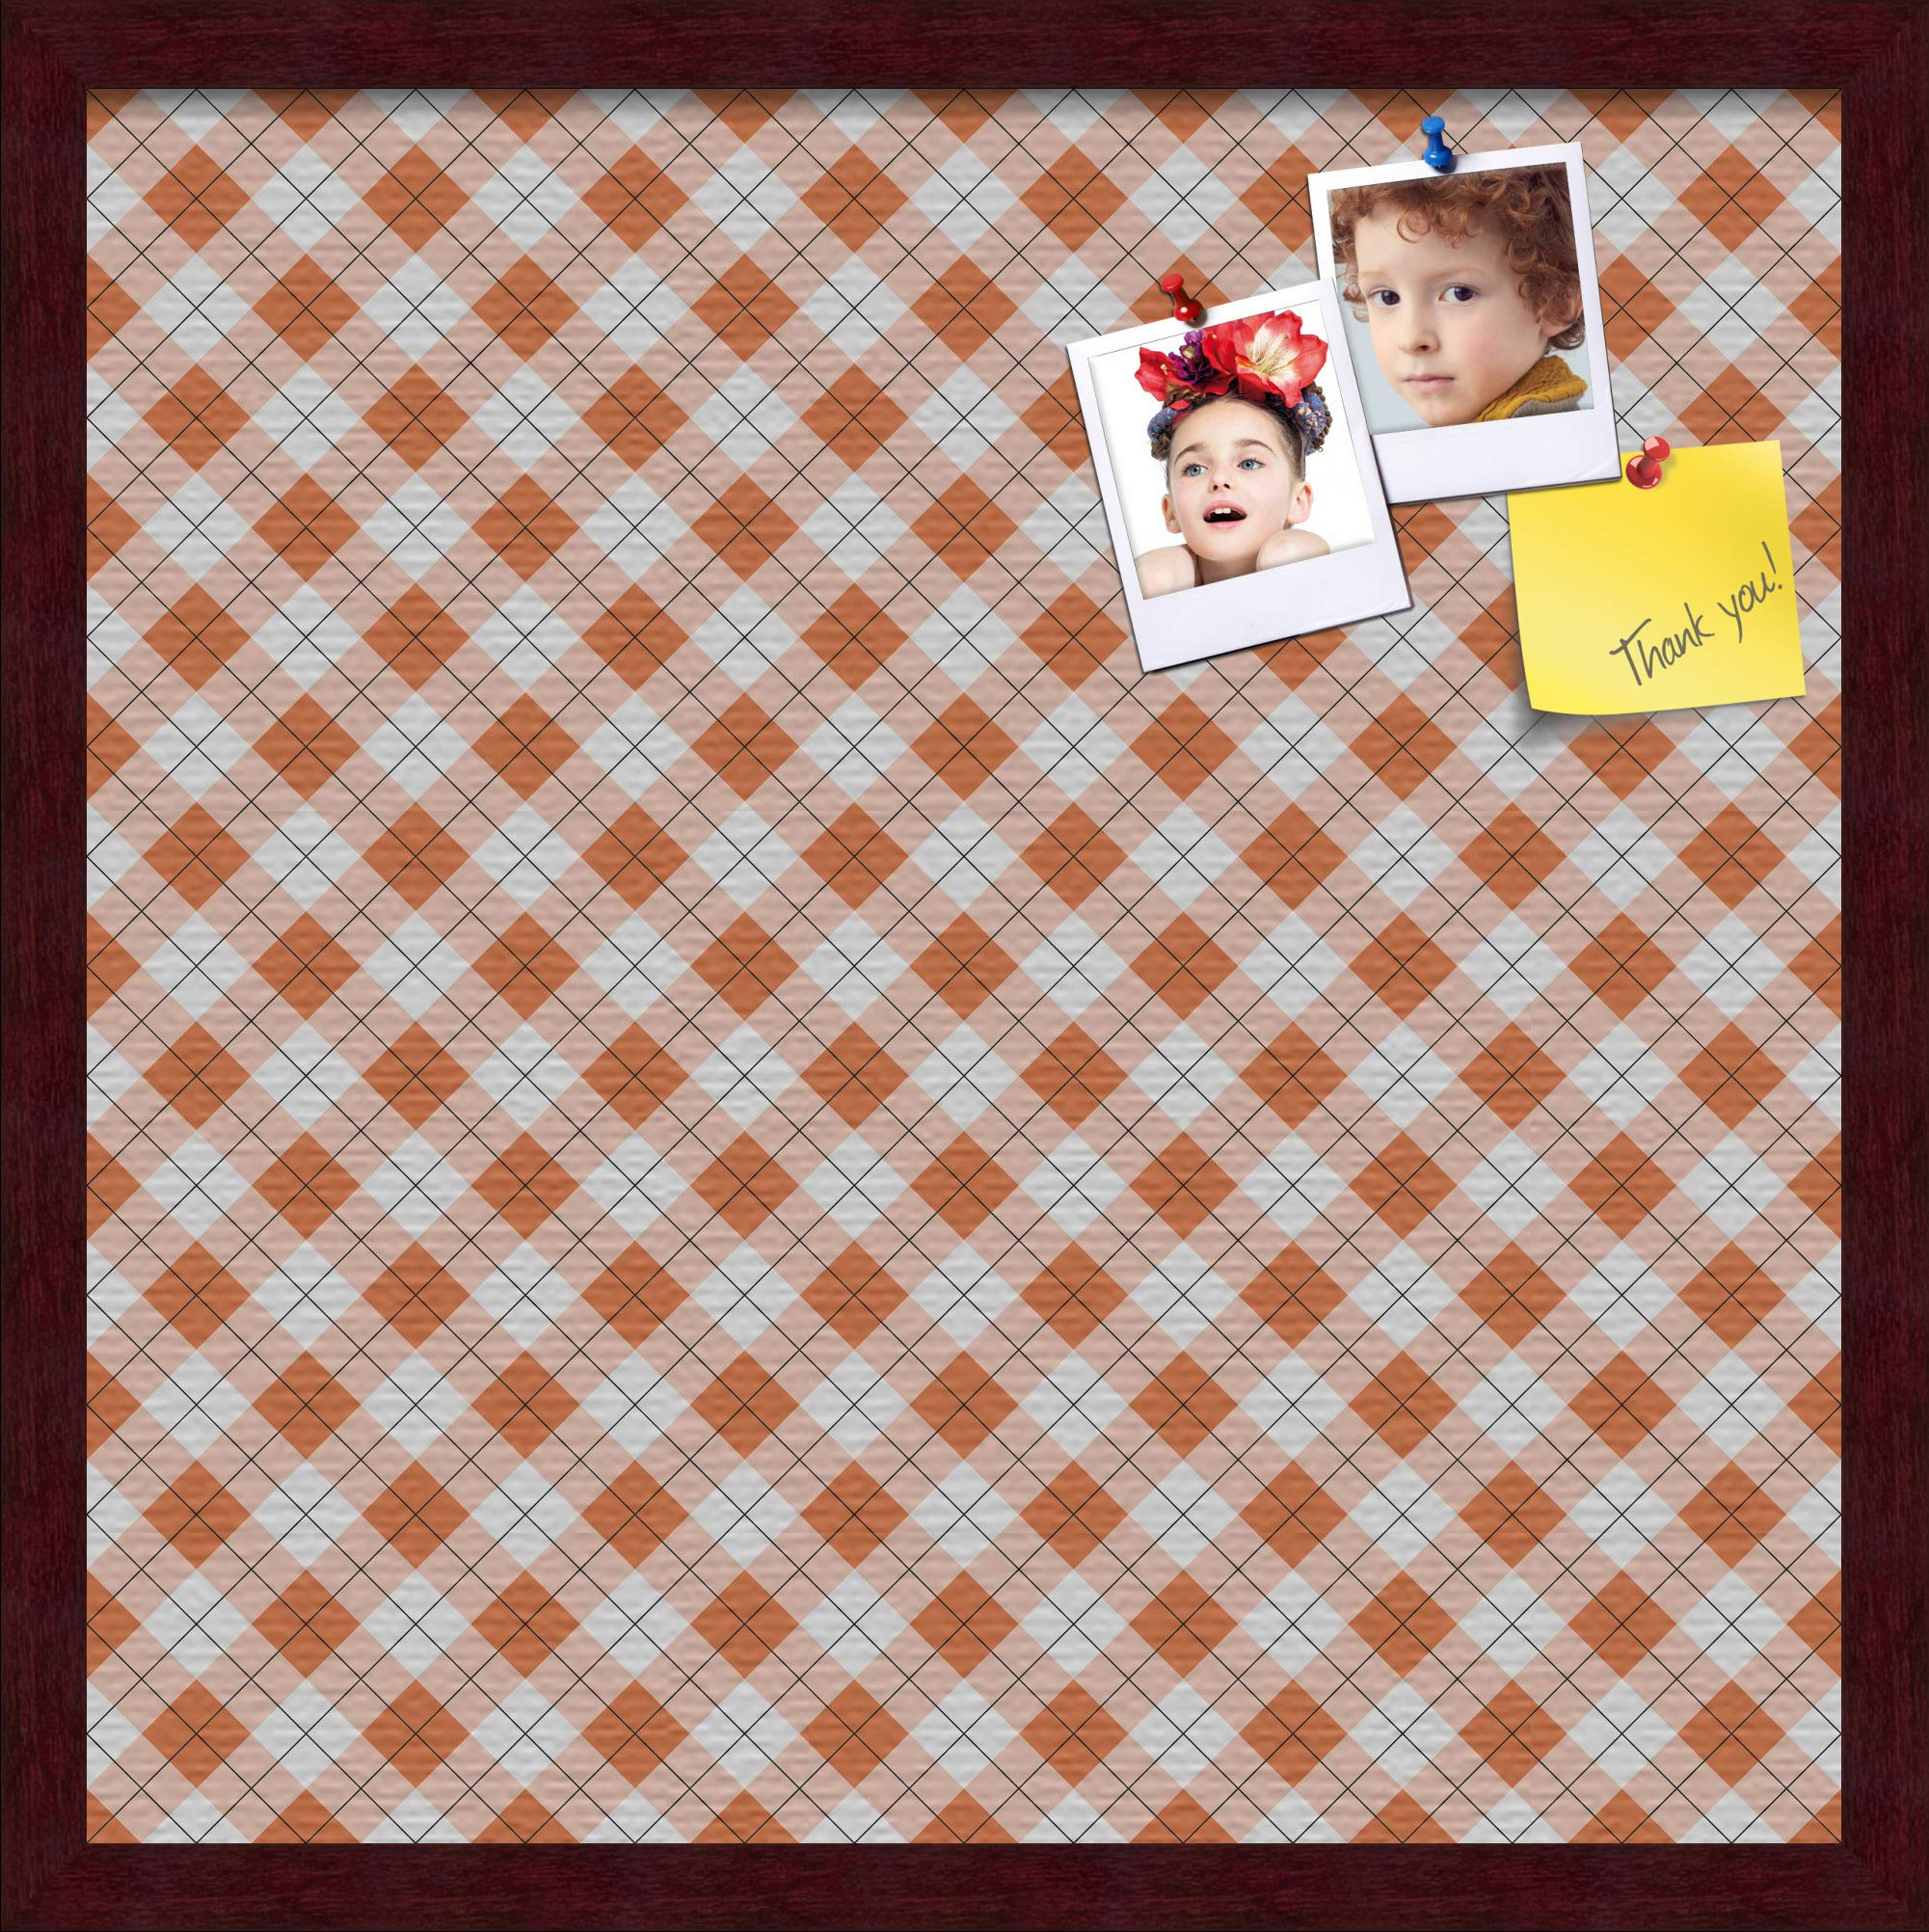 ArtToFrames 20x20 Inch Custom Cork Bulletin Board. This Argyle Burnt Orange Pin Board Comes with a Fabric Style Canvas Finish, in a Mahogany Frame (PinPix-634-20x20_FRBW26039)